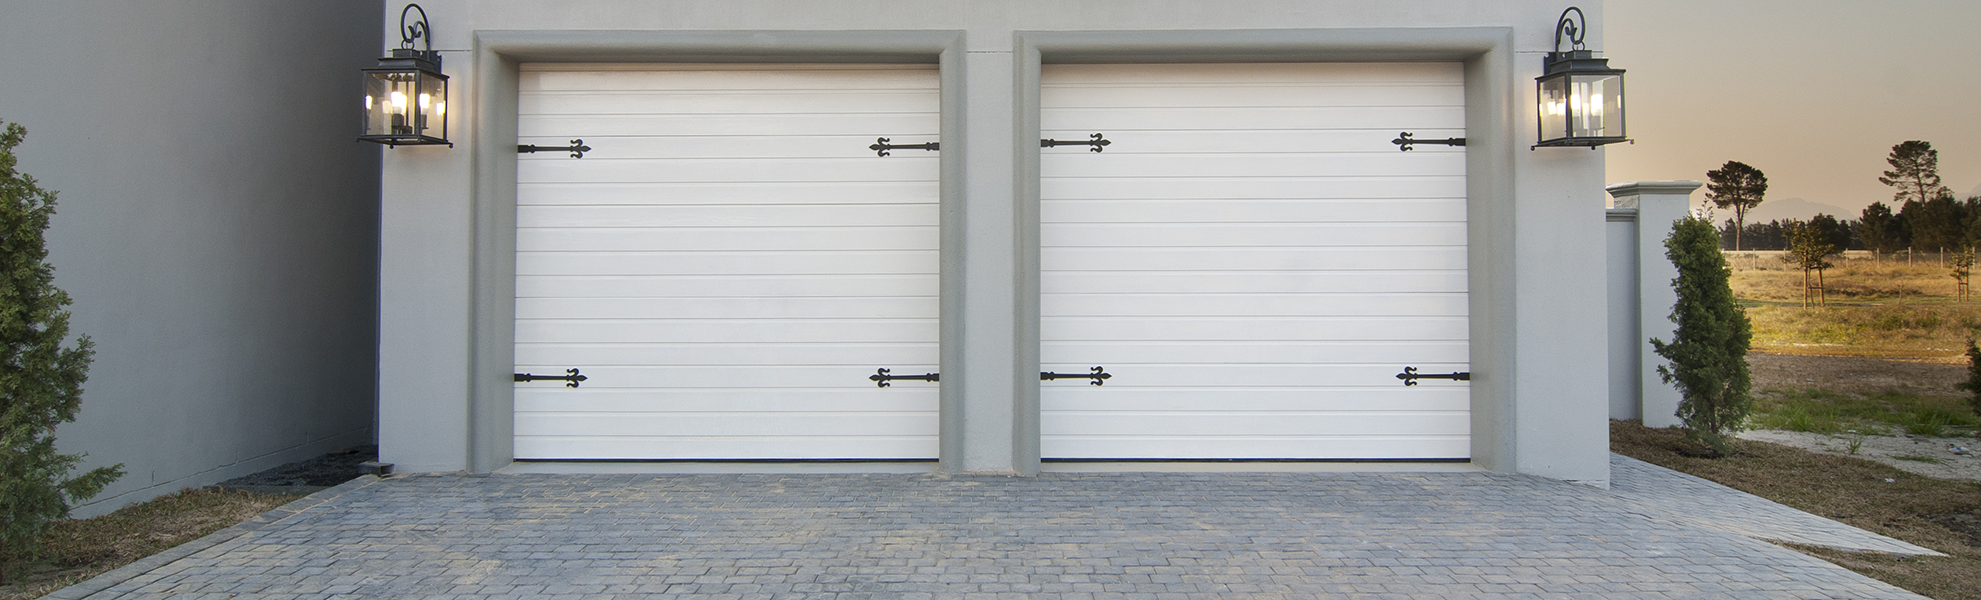 Garage Door Repair Evanston IL banner